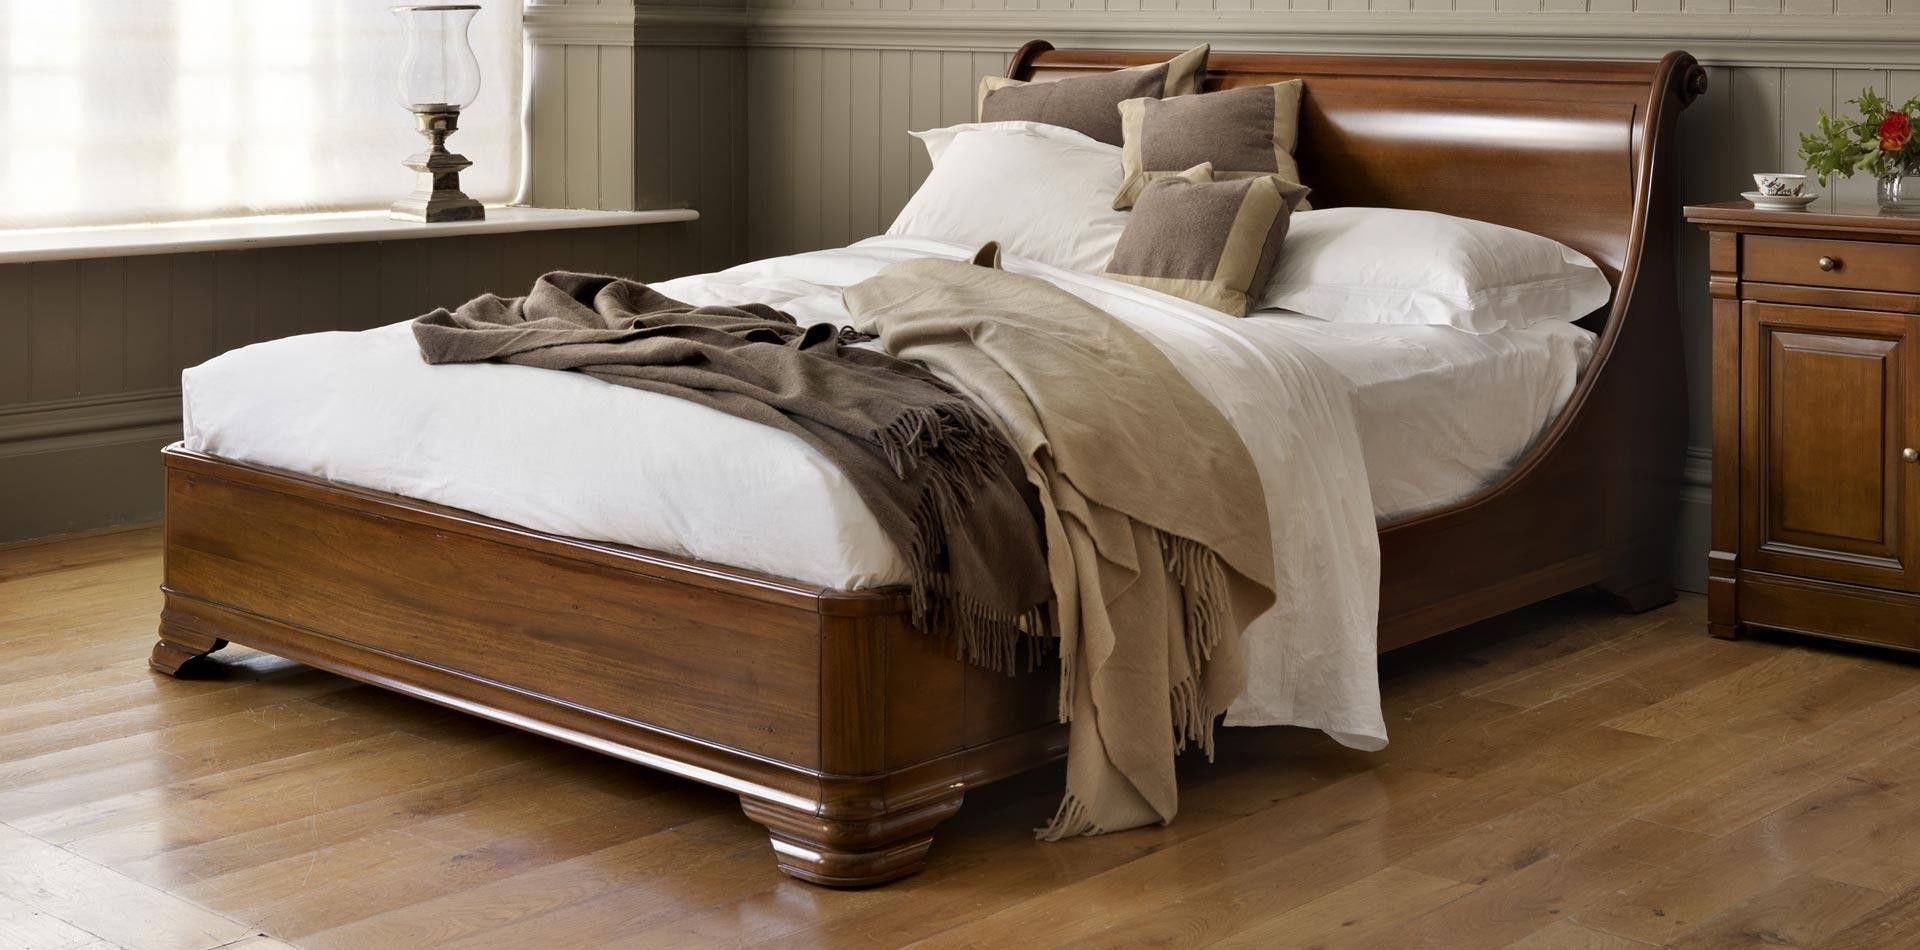 Luxury Manoir Socle Wooden Sleigh Bed AND SO TO BED